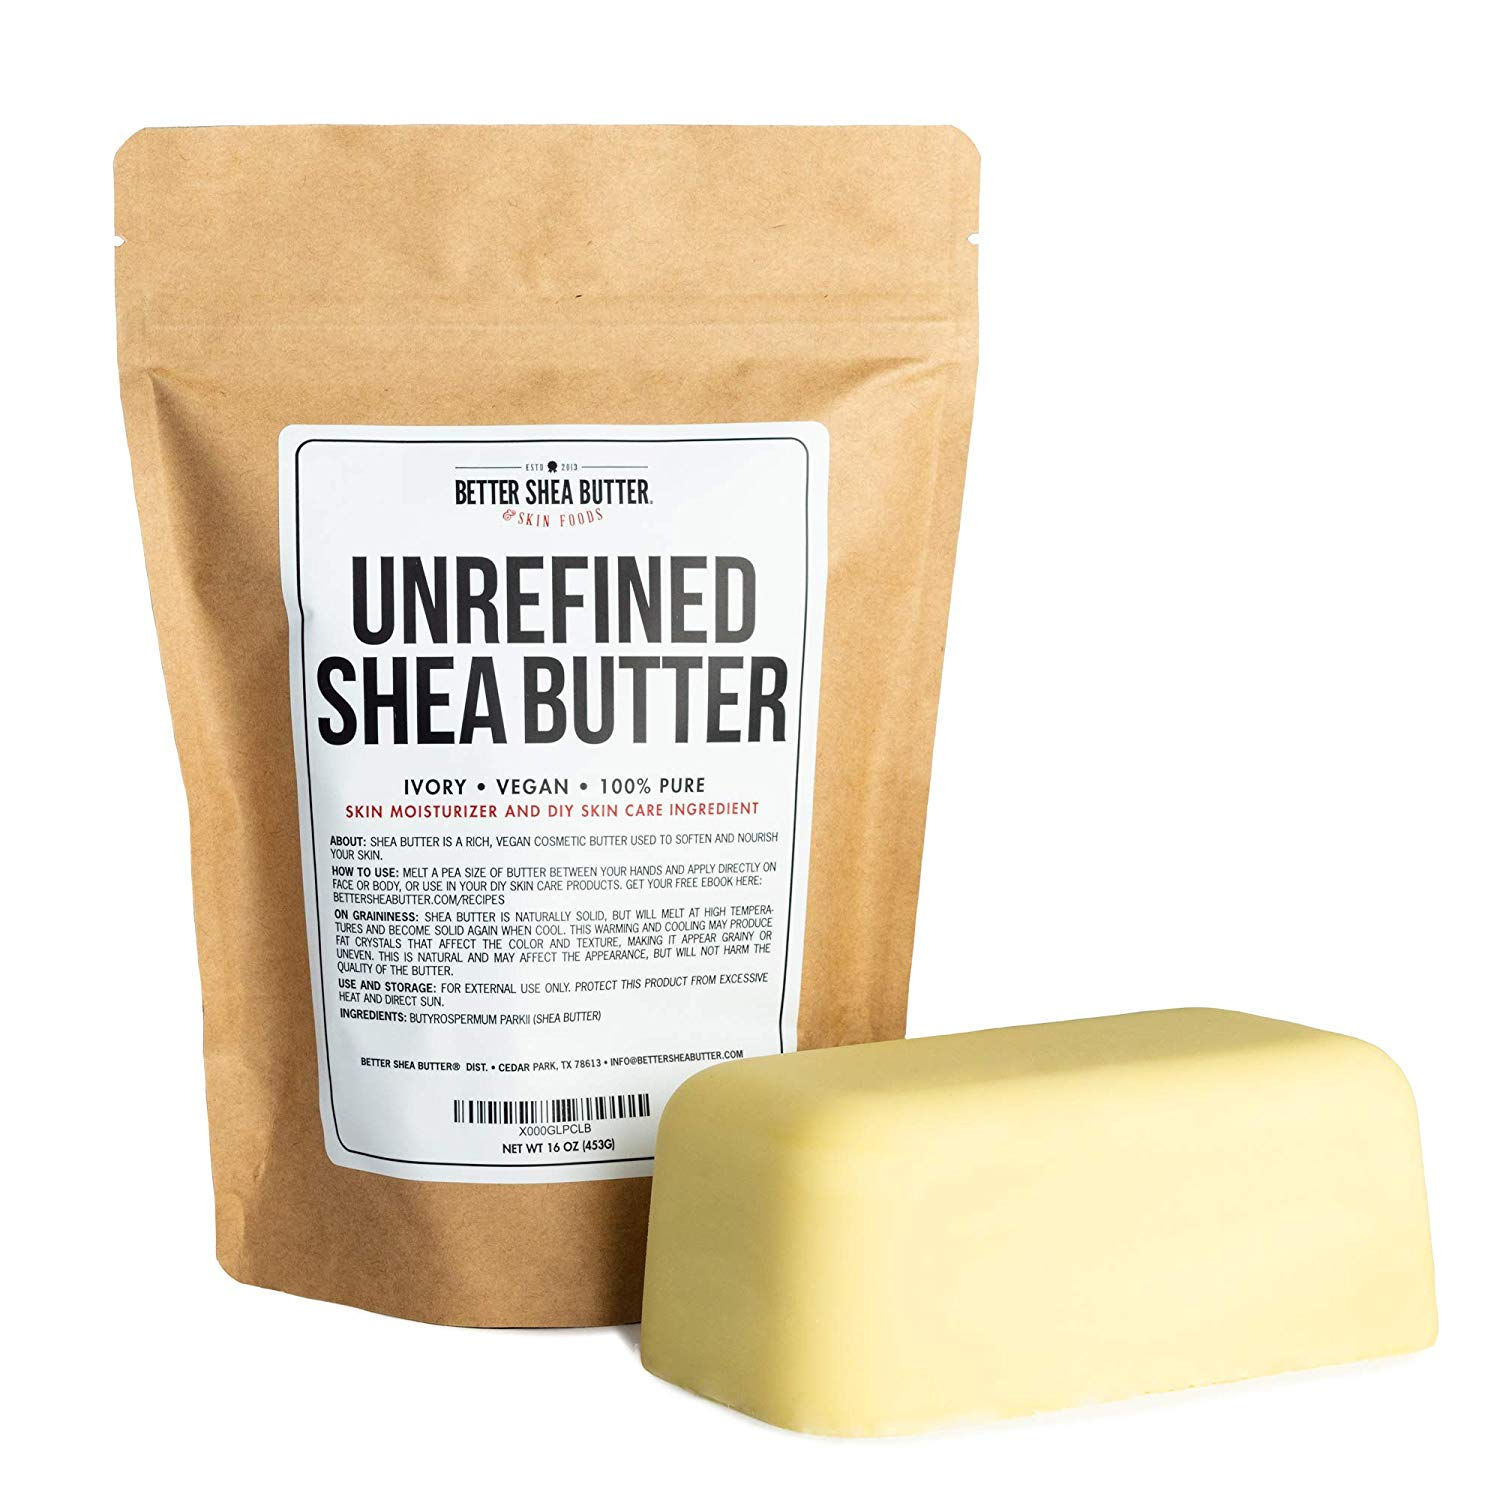 Better Shea Butter Unrefined African Shea Butter